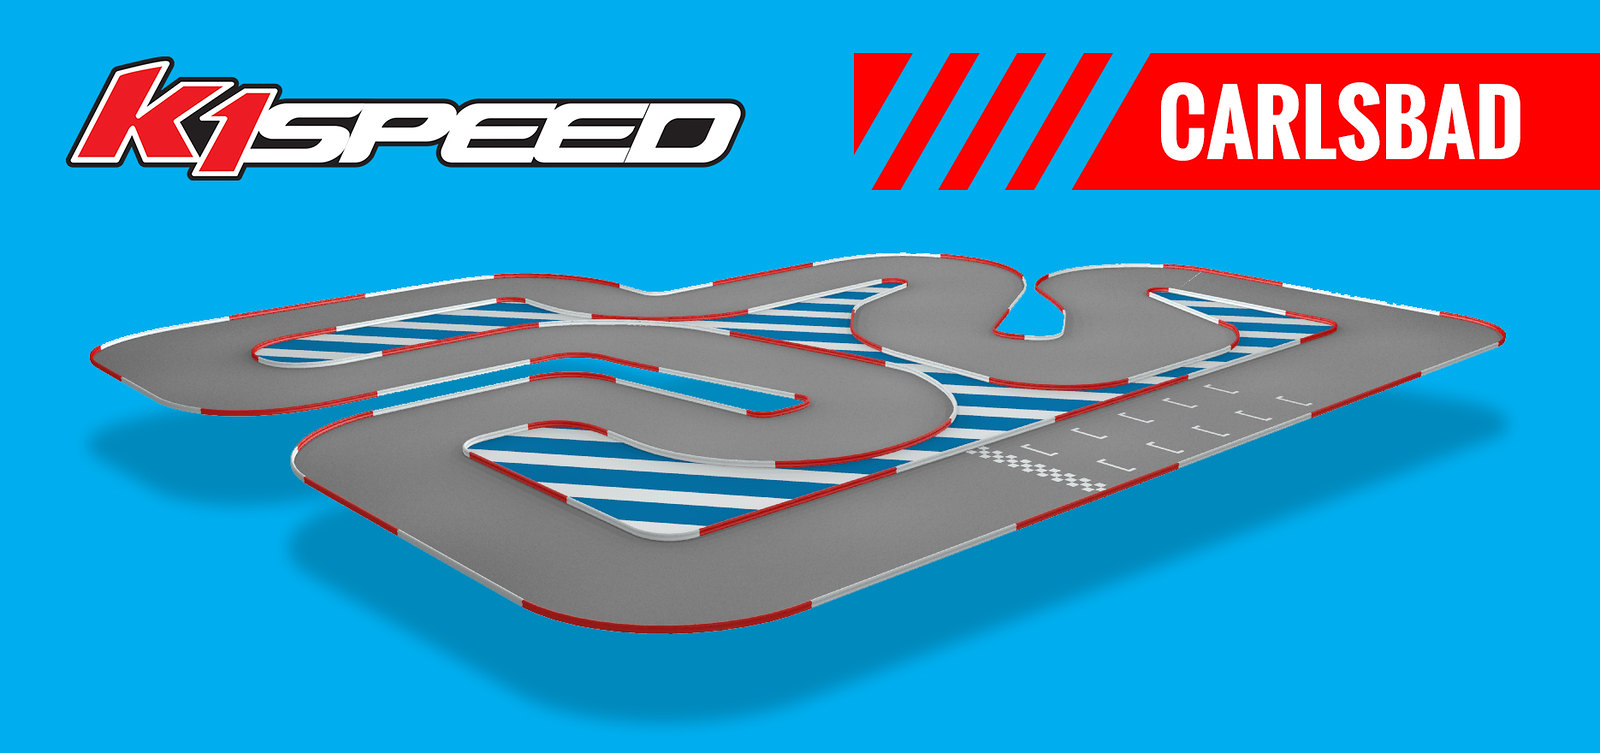 14497692949 fa6511cc72 h NEW Track Layout   K1 Speed Carlsbad